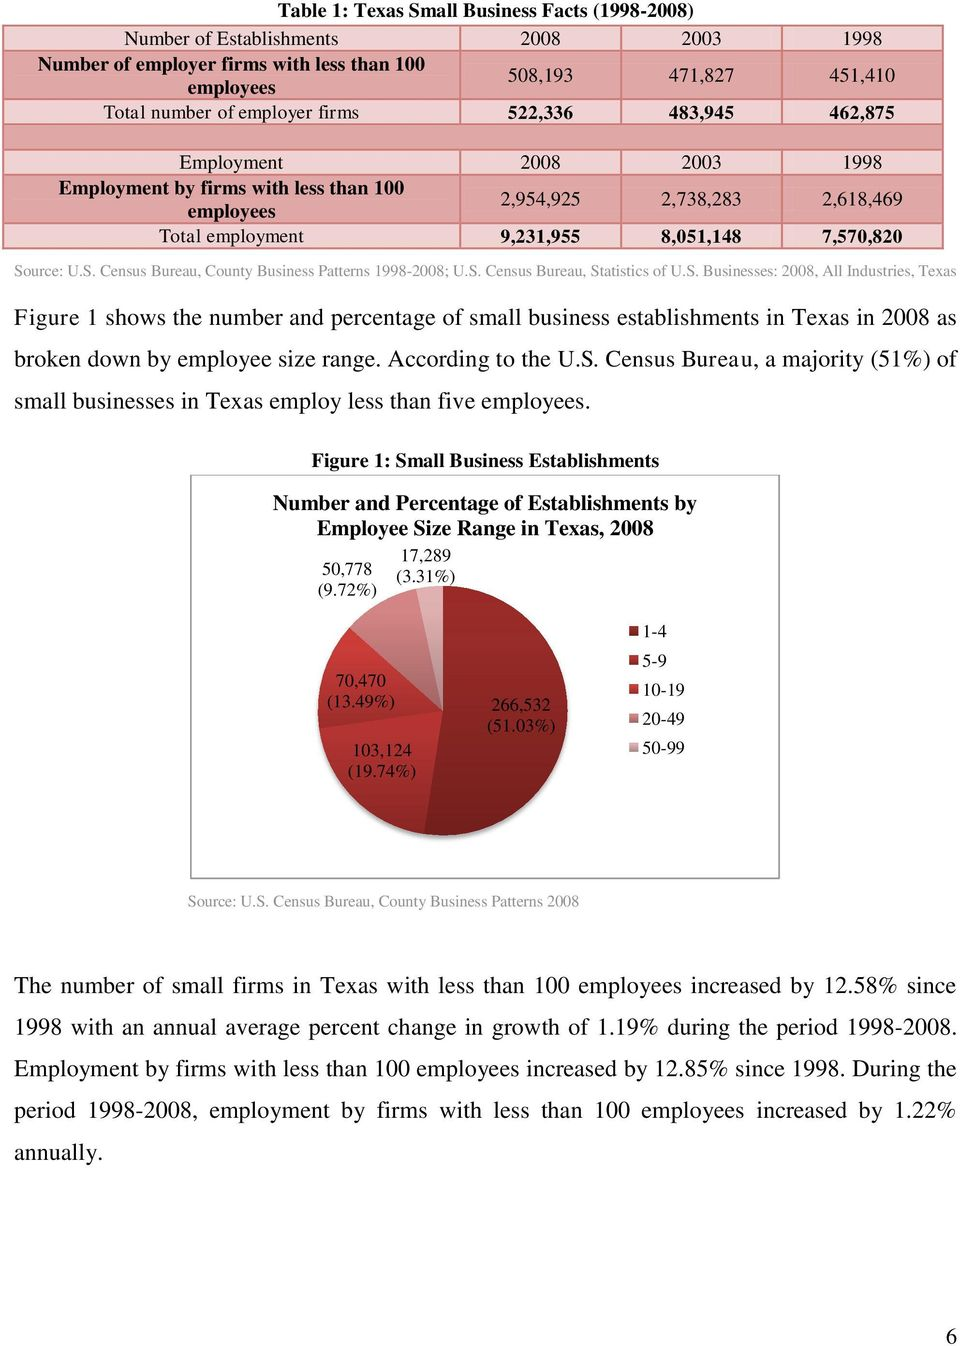 urce: U.S. Census Bureau, County Business Patterns 1998-2008; U.S. Census Bureau, Statistics of U.S. Businesses: 2008, All Industries, Texas Figure 1 shows the number and percentage of small business establishments in Texas in 2008 as broken down by employee size range.